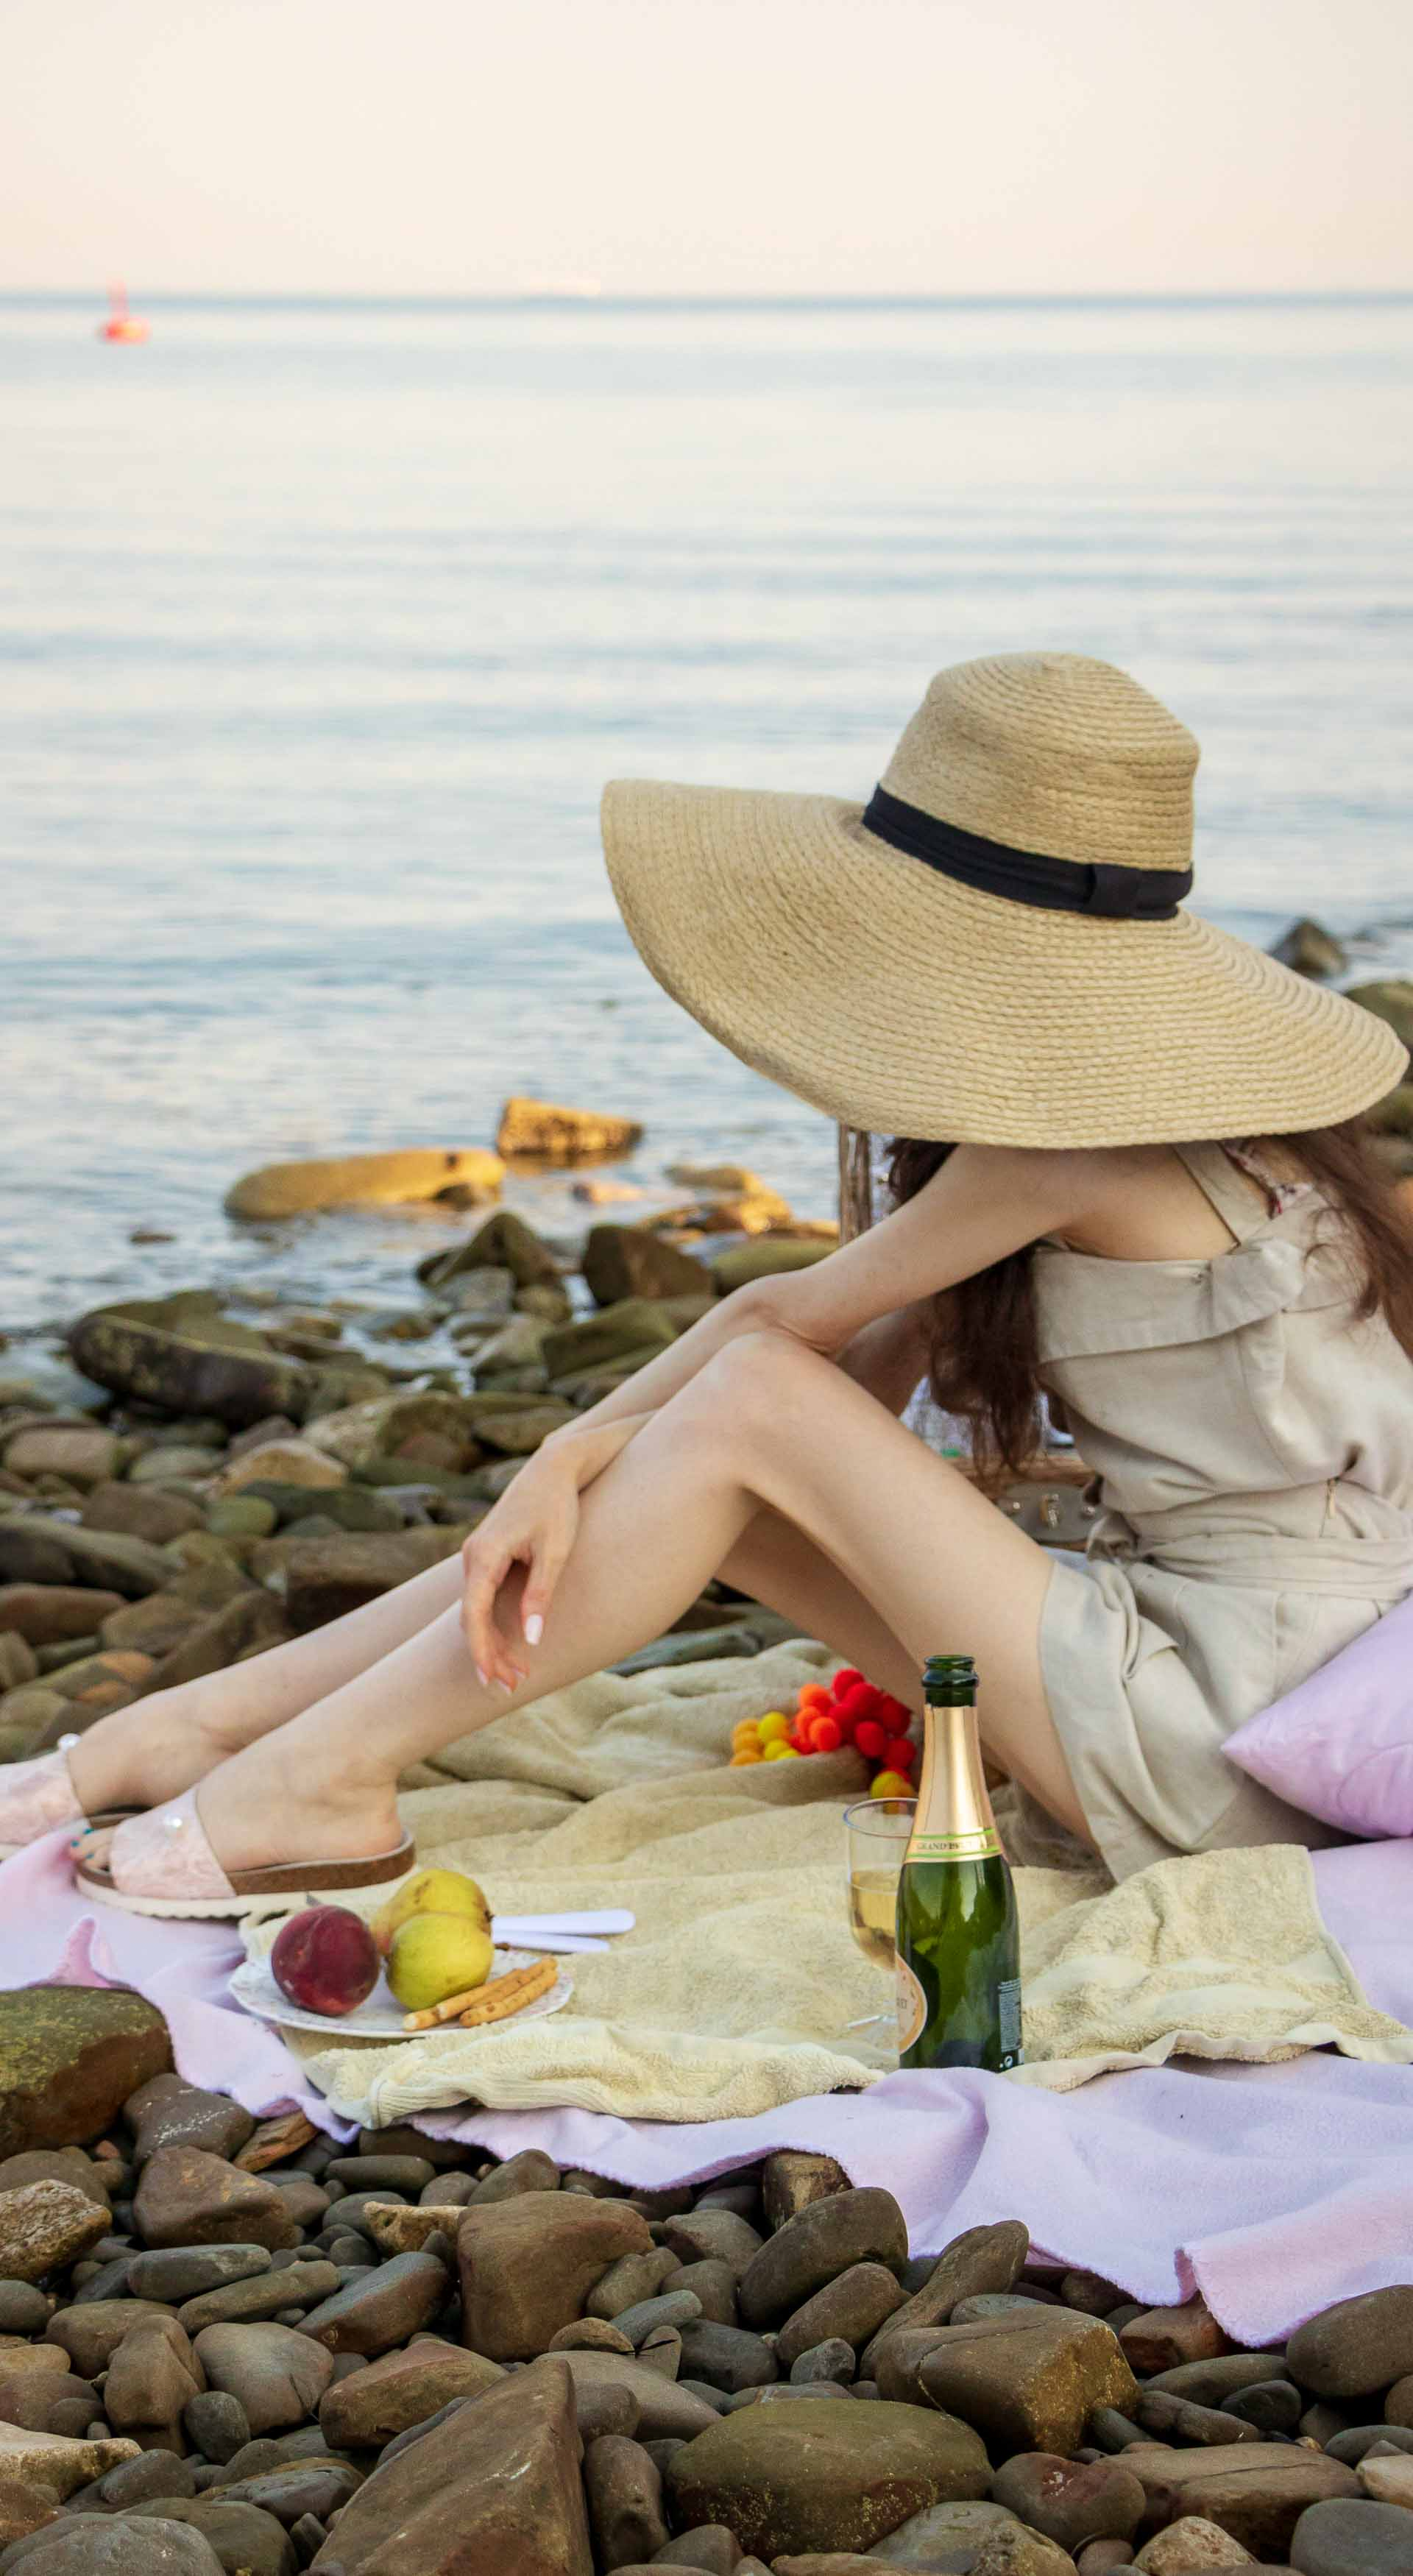 Slovenian Fashion Blogger Veronika Lipar of Brunette from Wall wearing beige linen crop top, paper bag linen shorts, luxe pool slides, large straw hat, Nannacay basket bag while sitting on a picnic blanket and staring at the sea